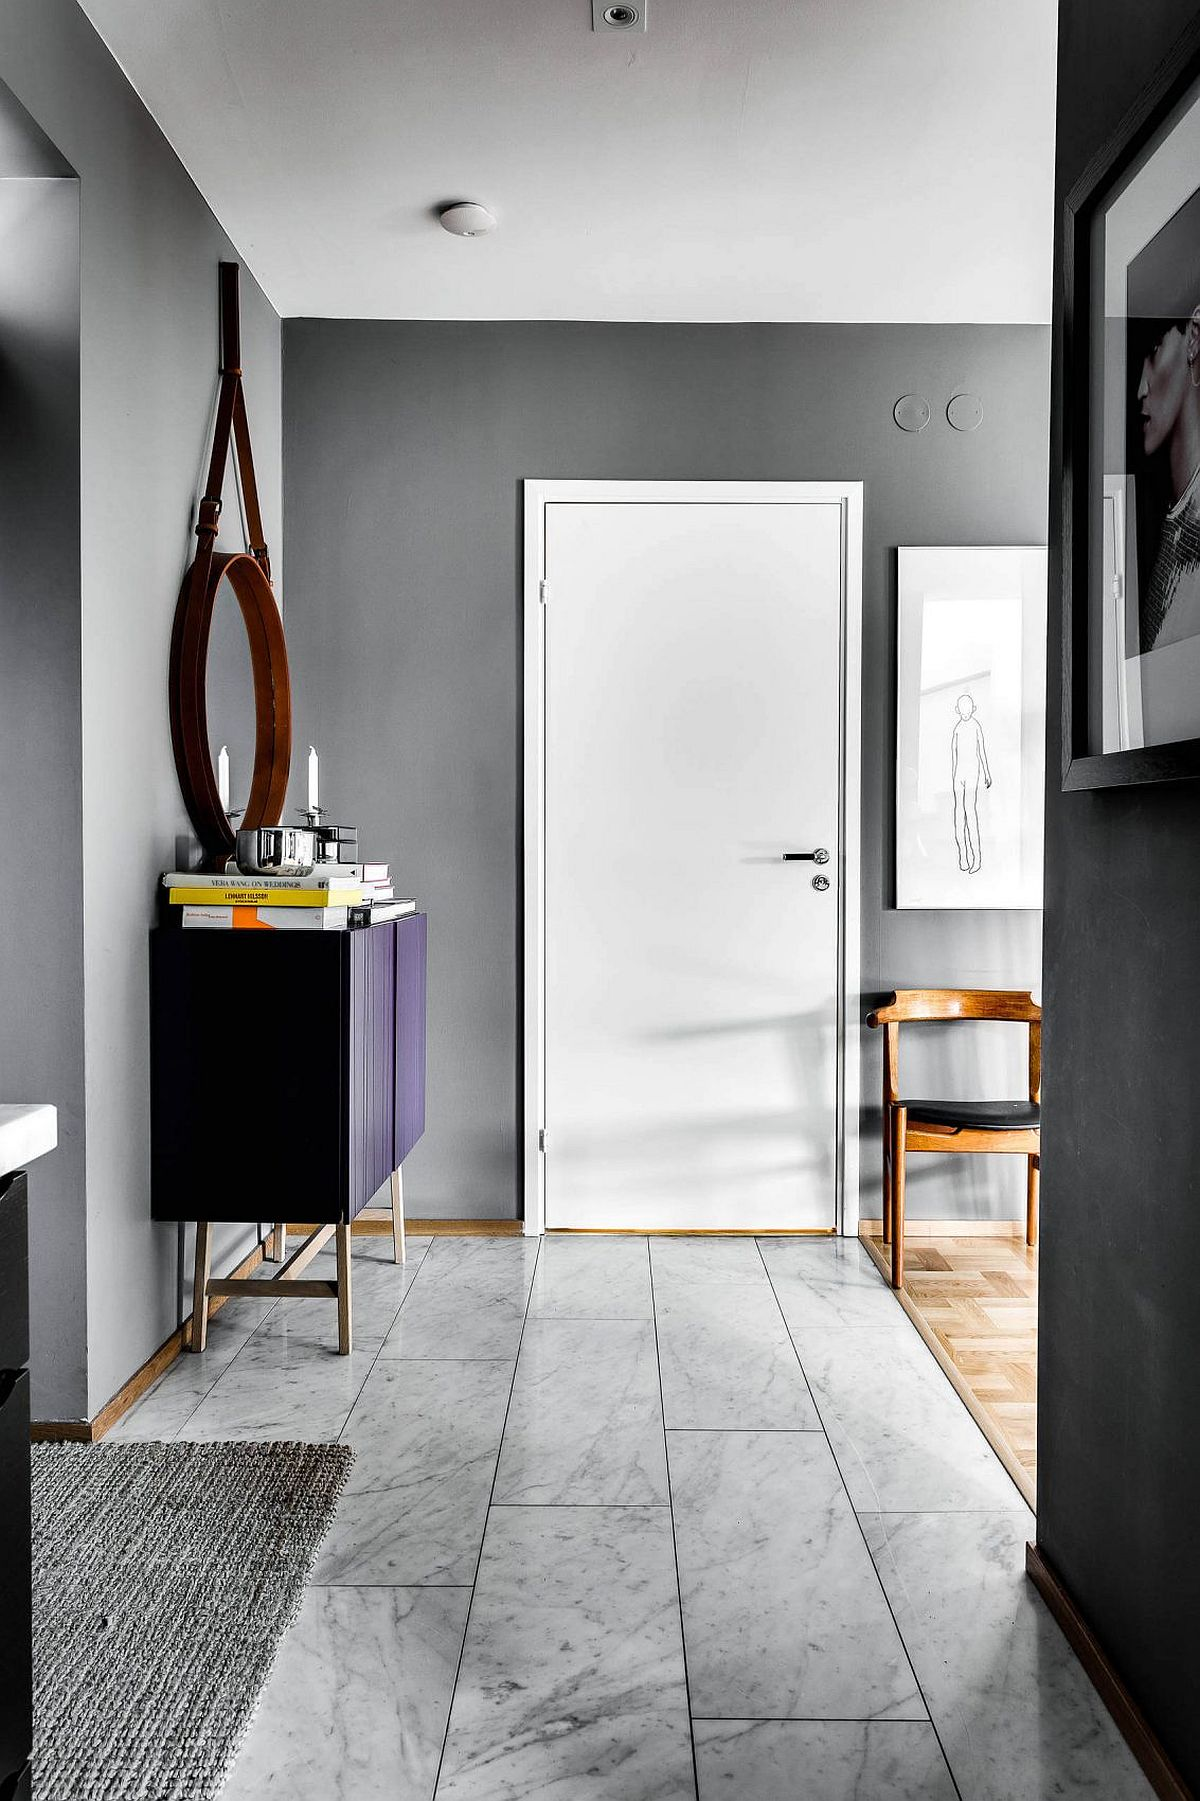 Entrance to the refined apartment in Stockholm with Scandinavian style